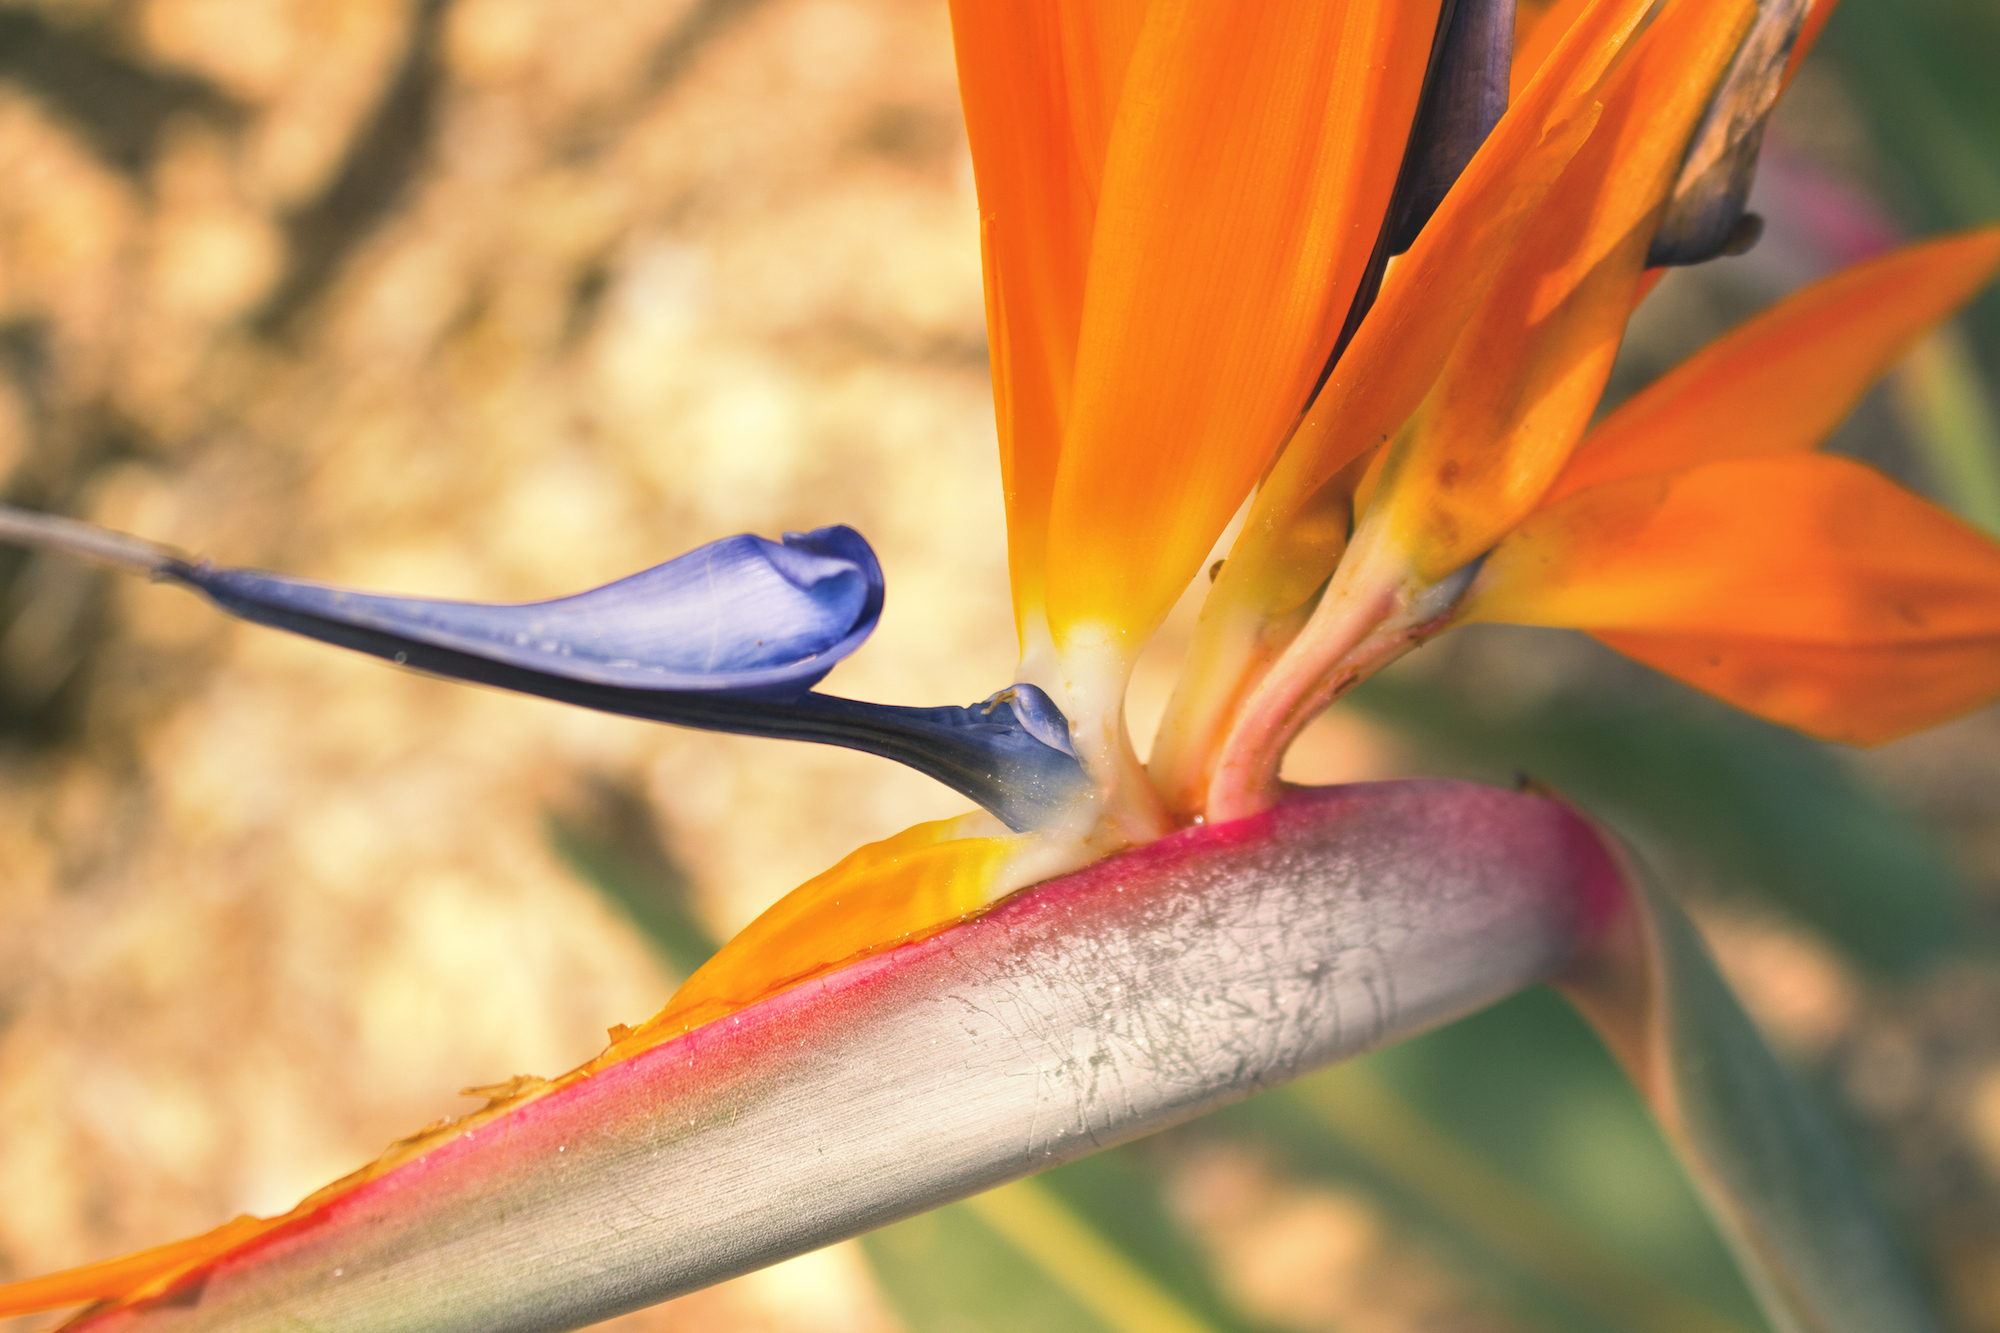 Birds of paradise in Ramat Hanadiv memorial gardens in Israel, photographed by Geena Matuson @geenamatuson #thegirlmirage.